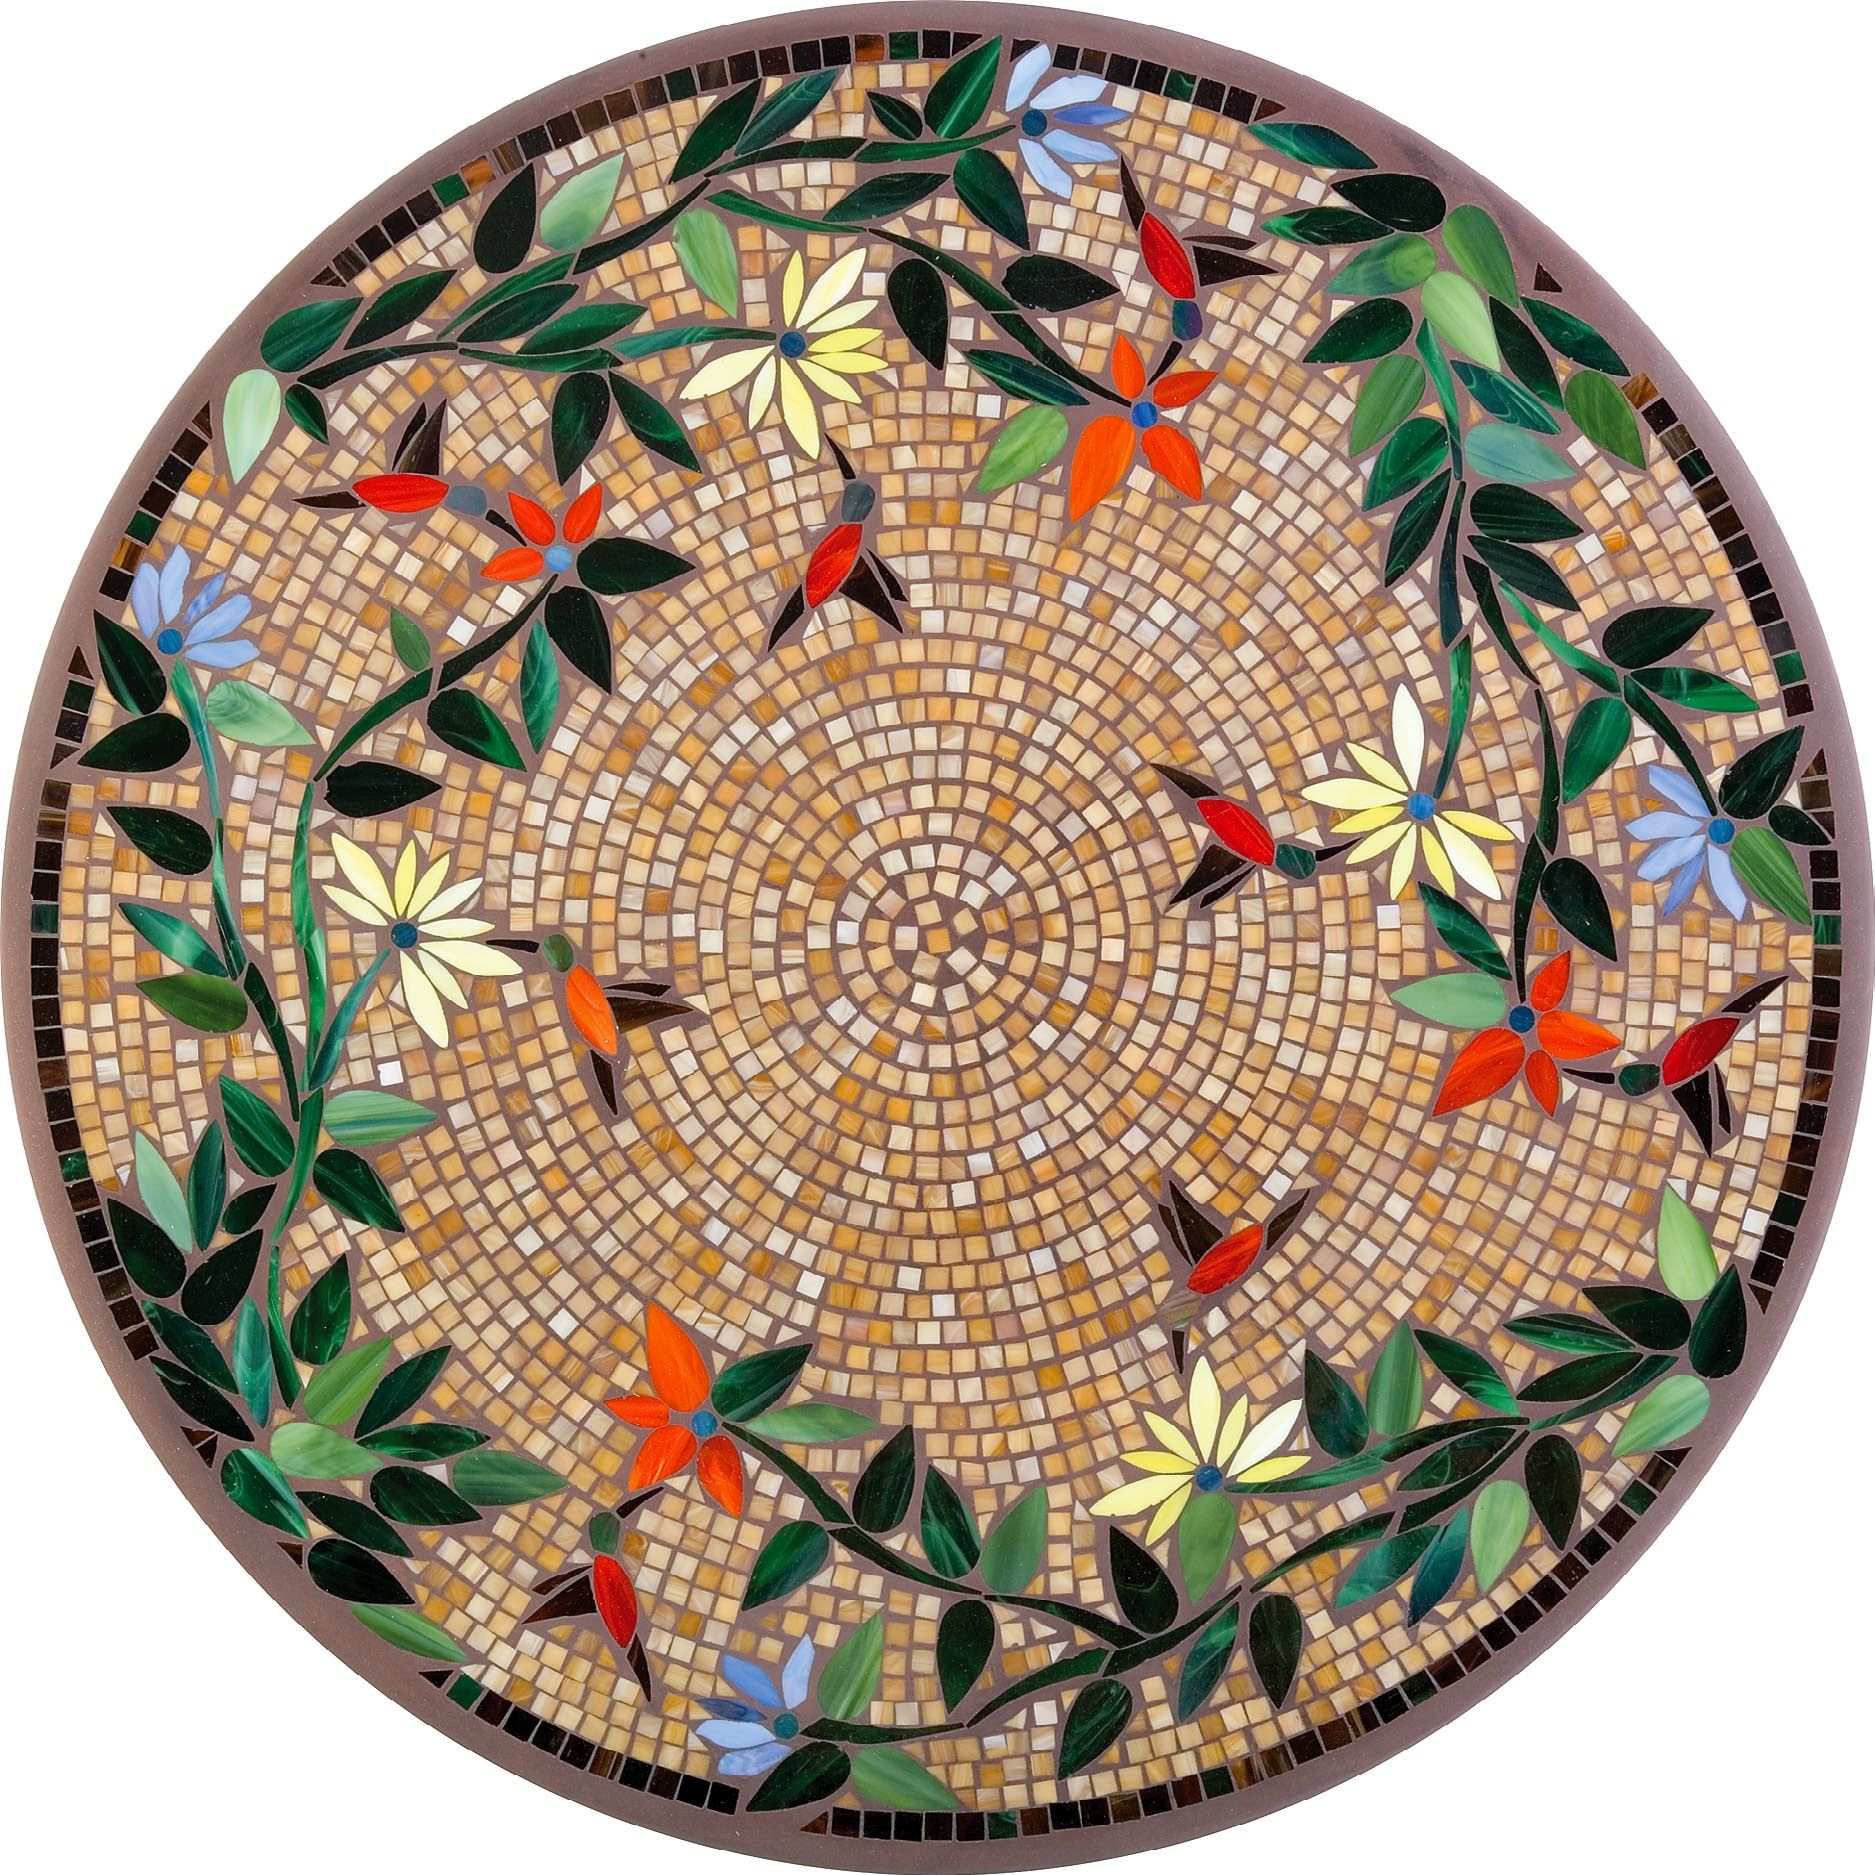 Table Mosaic Patterns: Round Mosaic Table Patterns